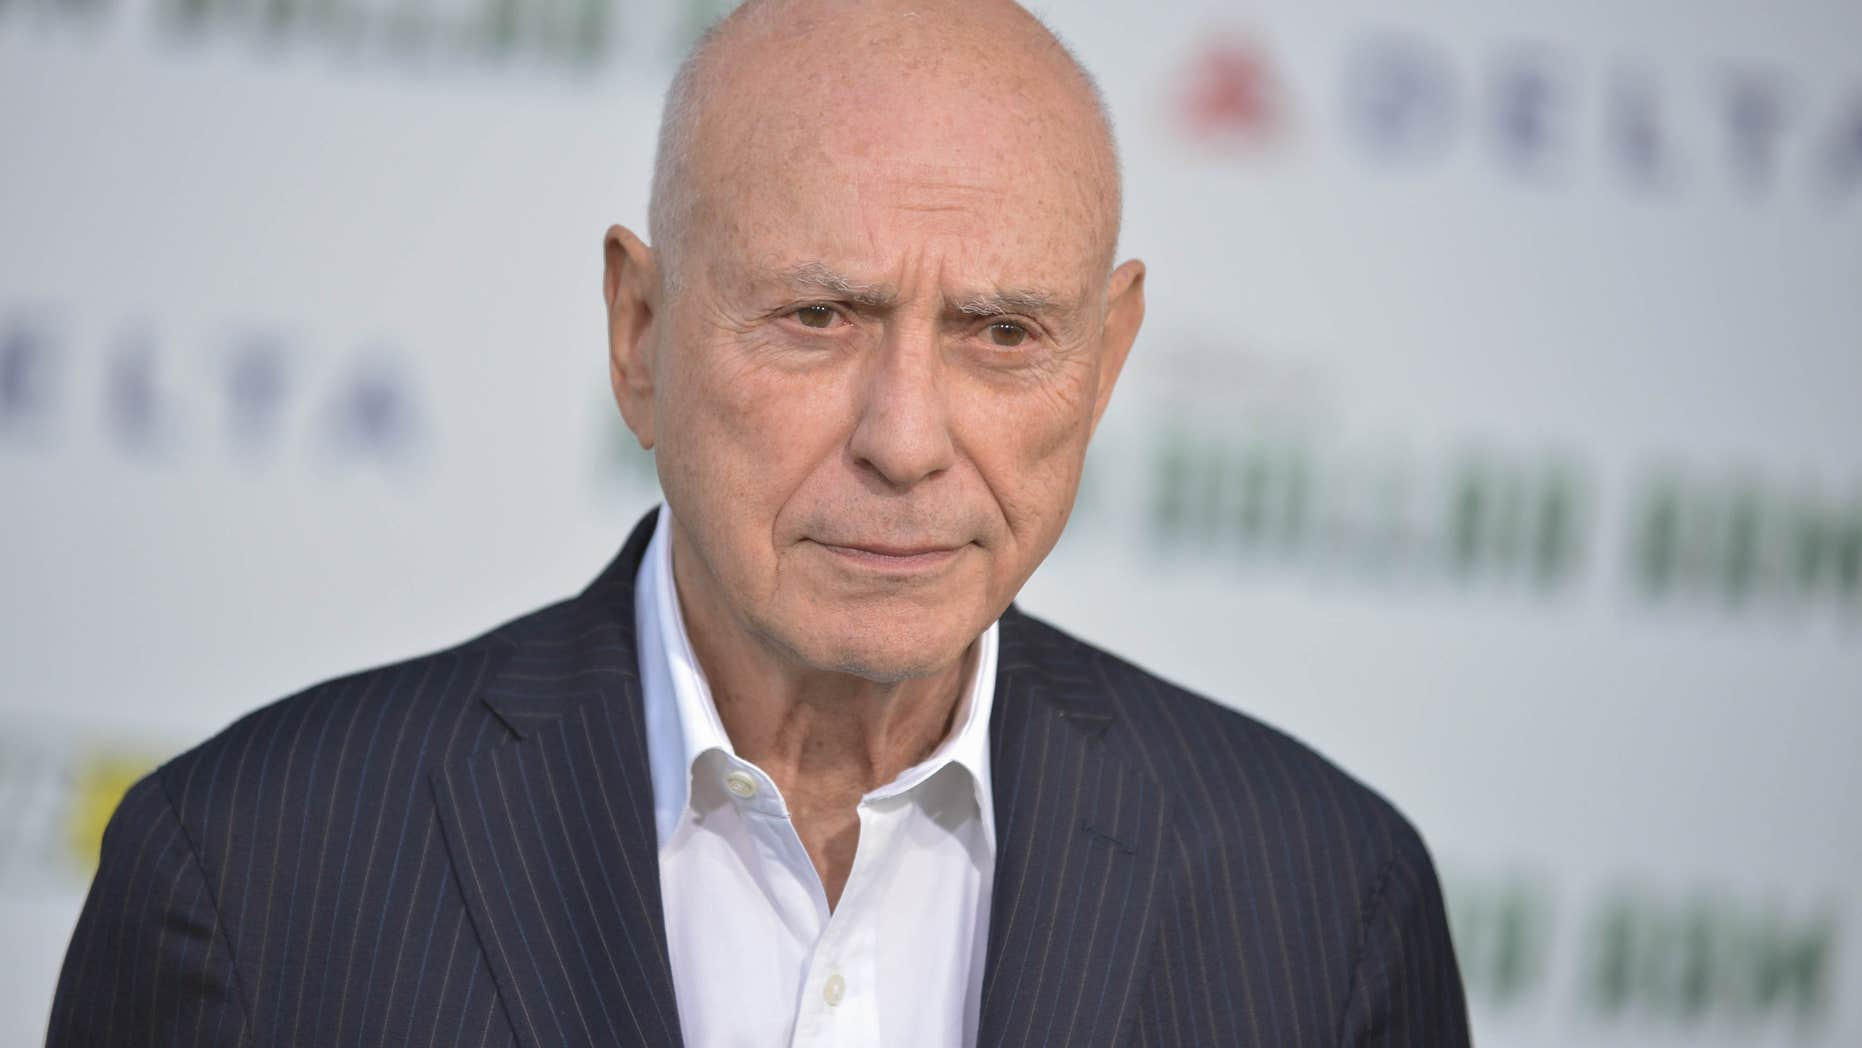 """FILE - In this May 6, 2014 file photo, Alan Arkin arrives at the world premiere of """"Million Dollar Arm"""" in Los Angeles."""